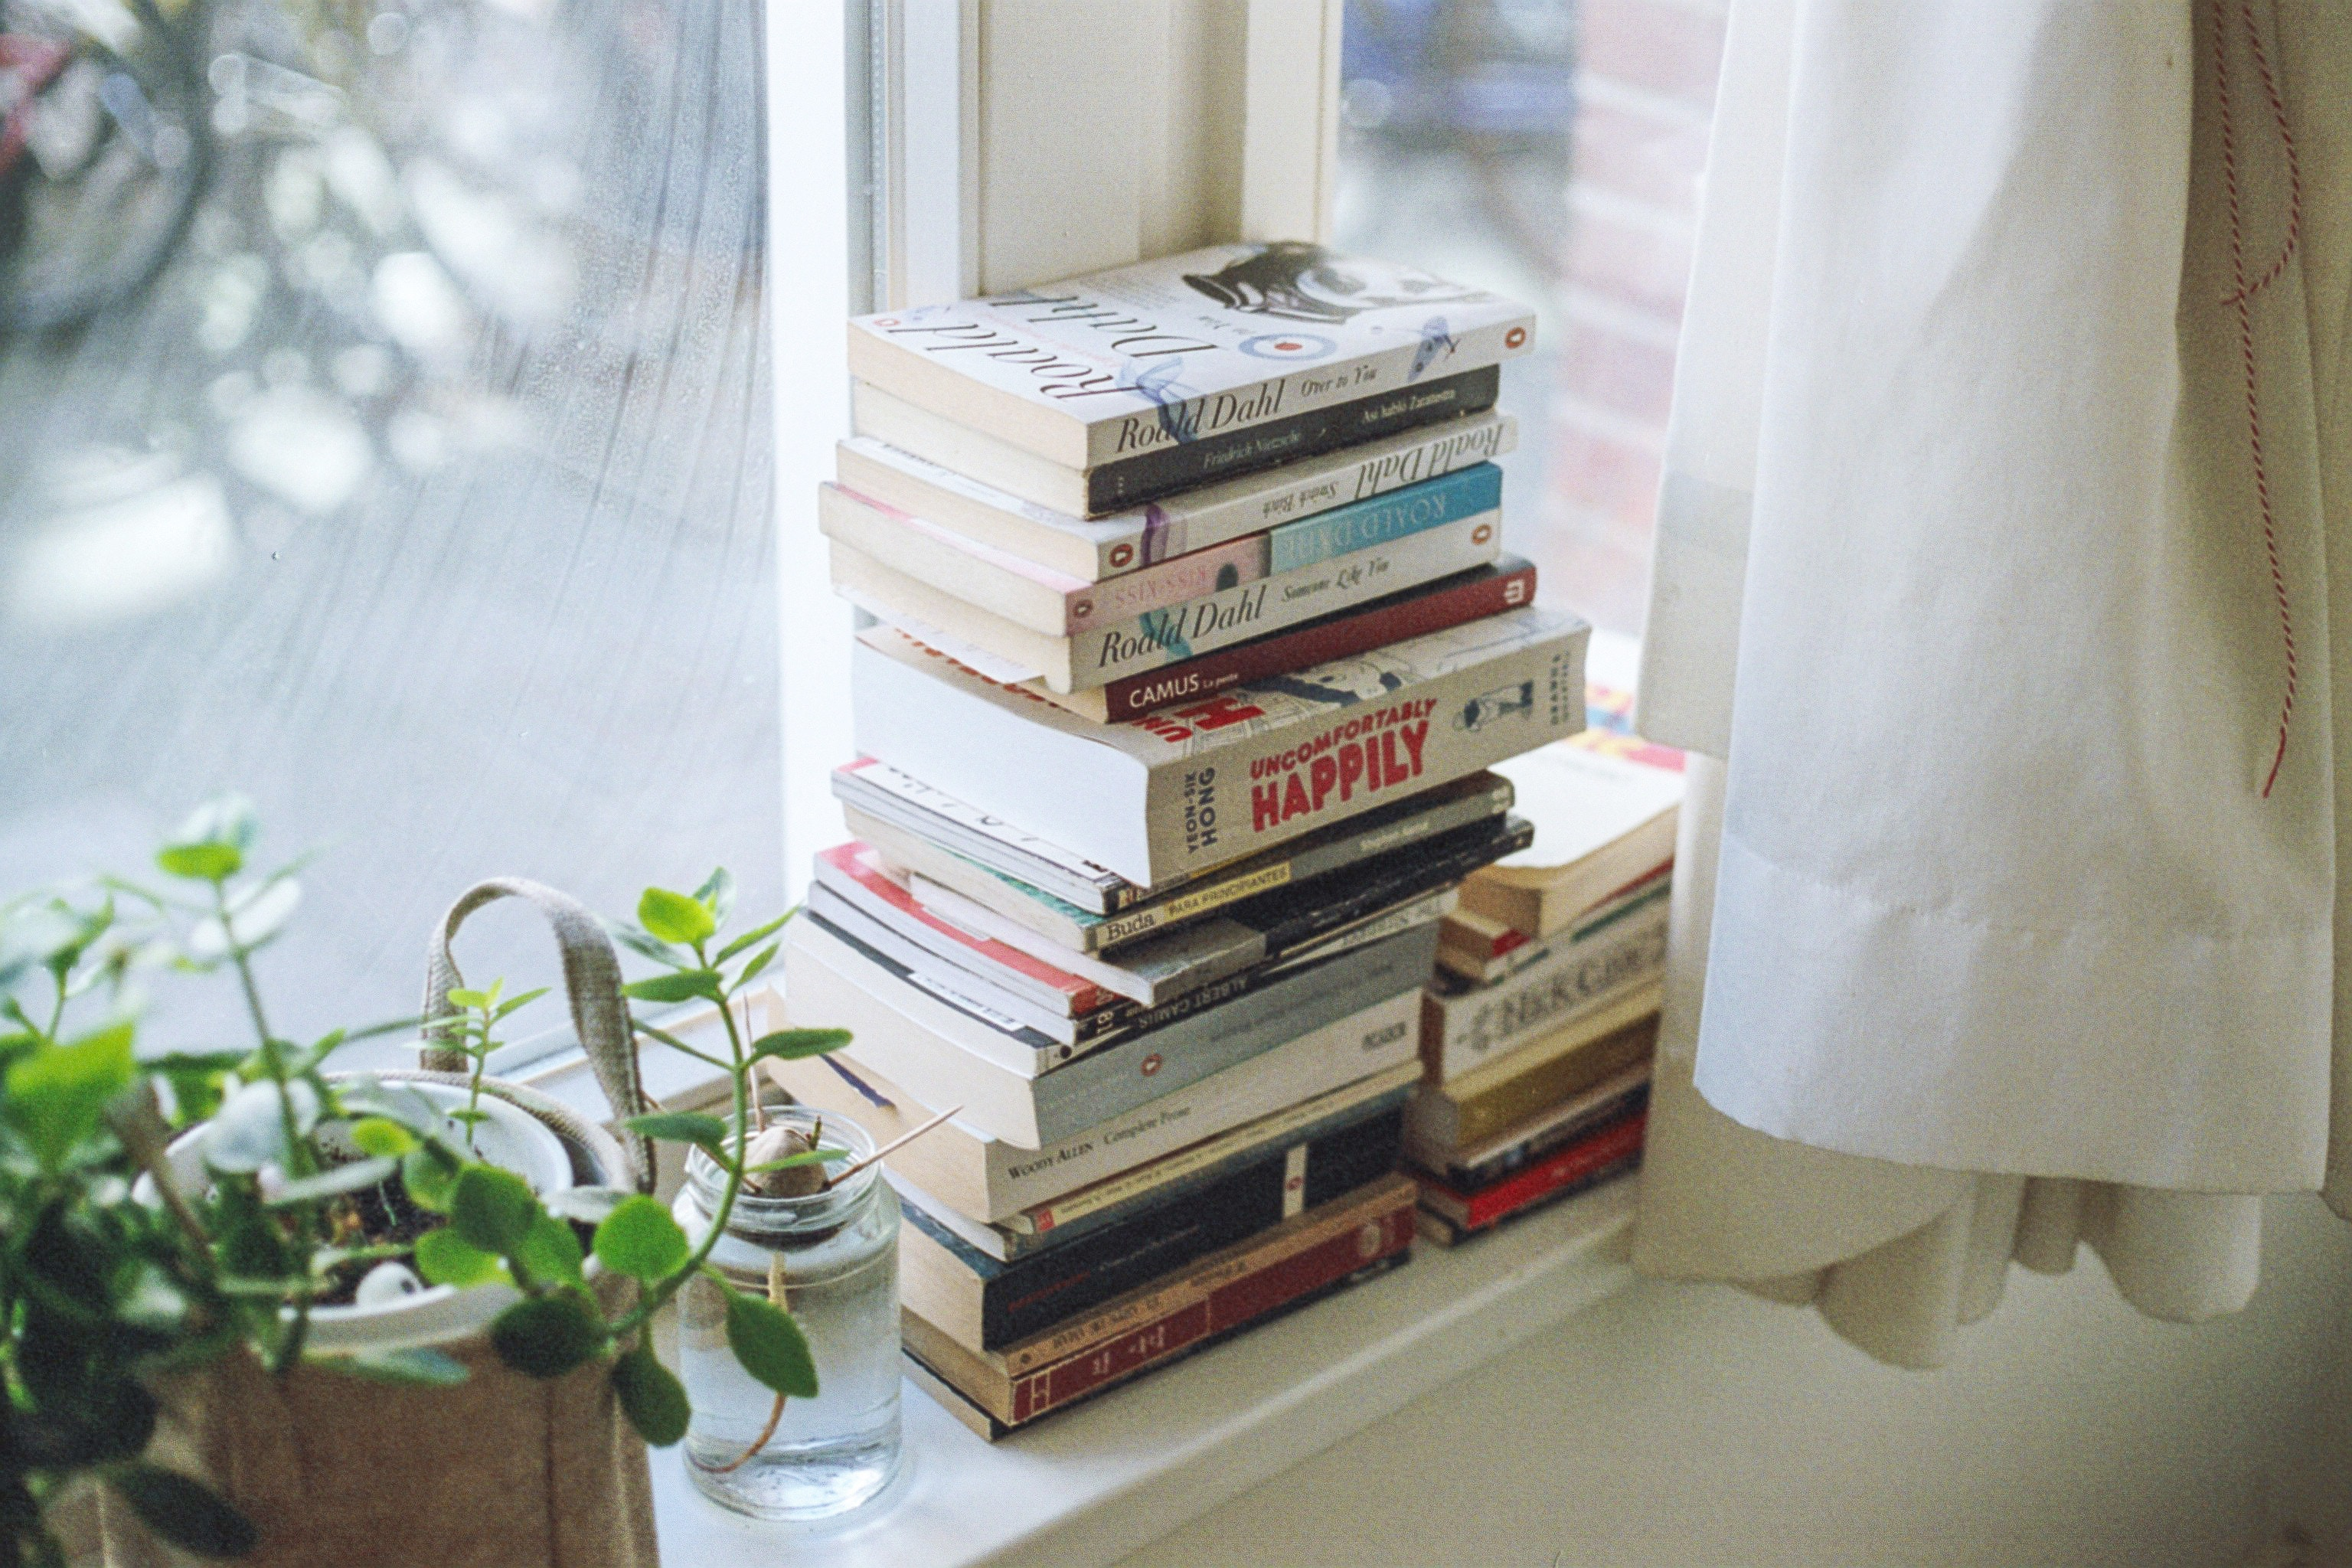 Sugarmamma's Recommended Reading List